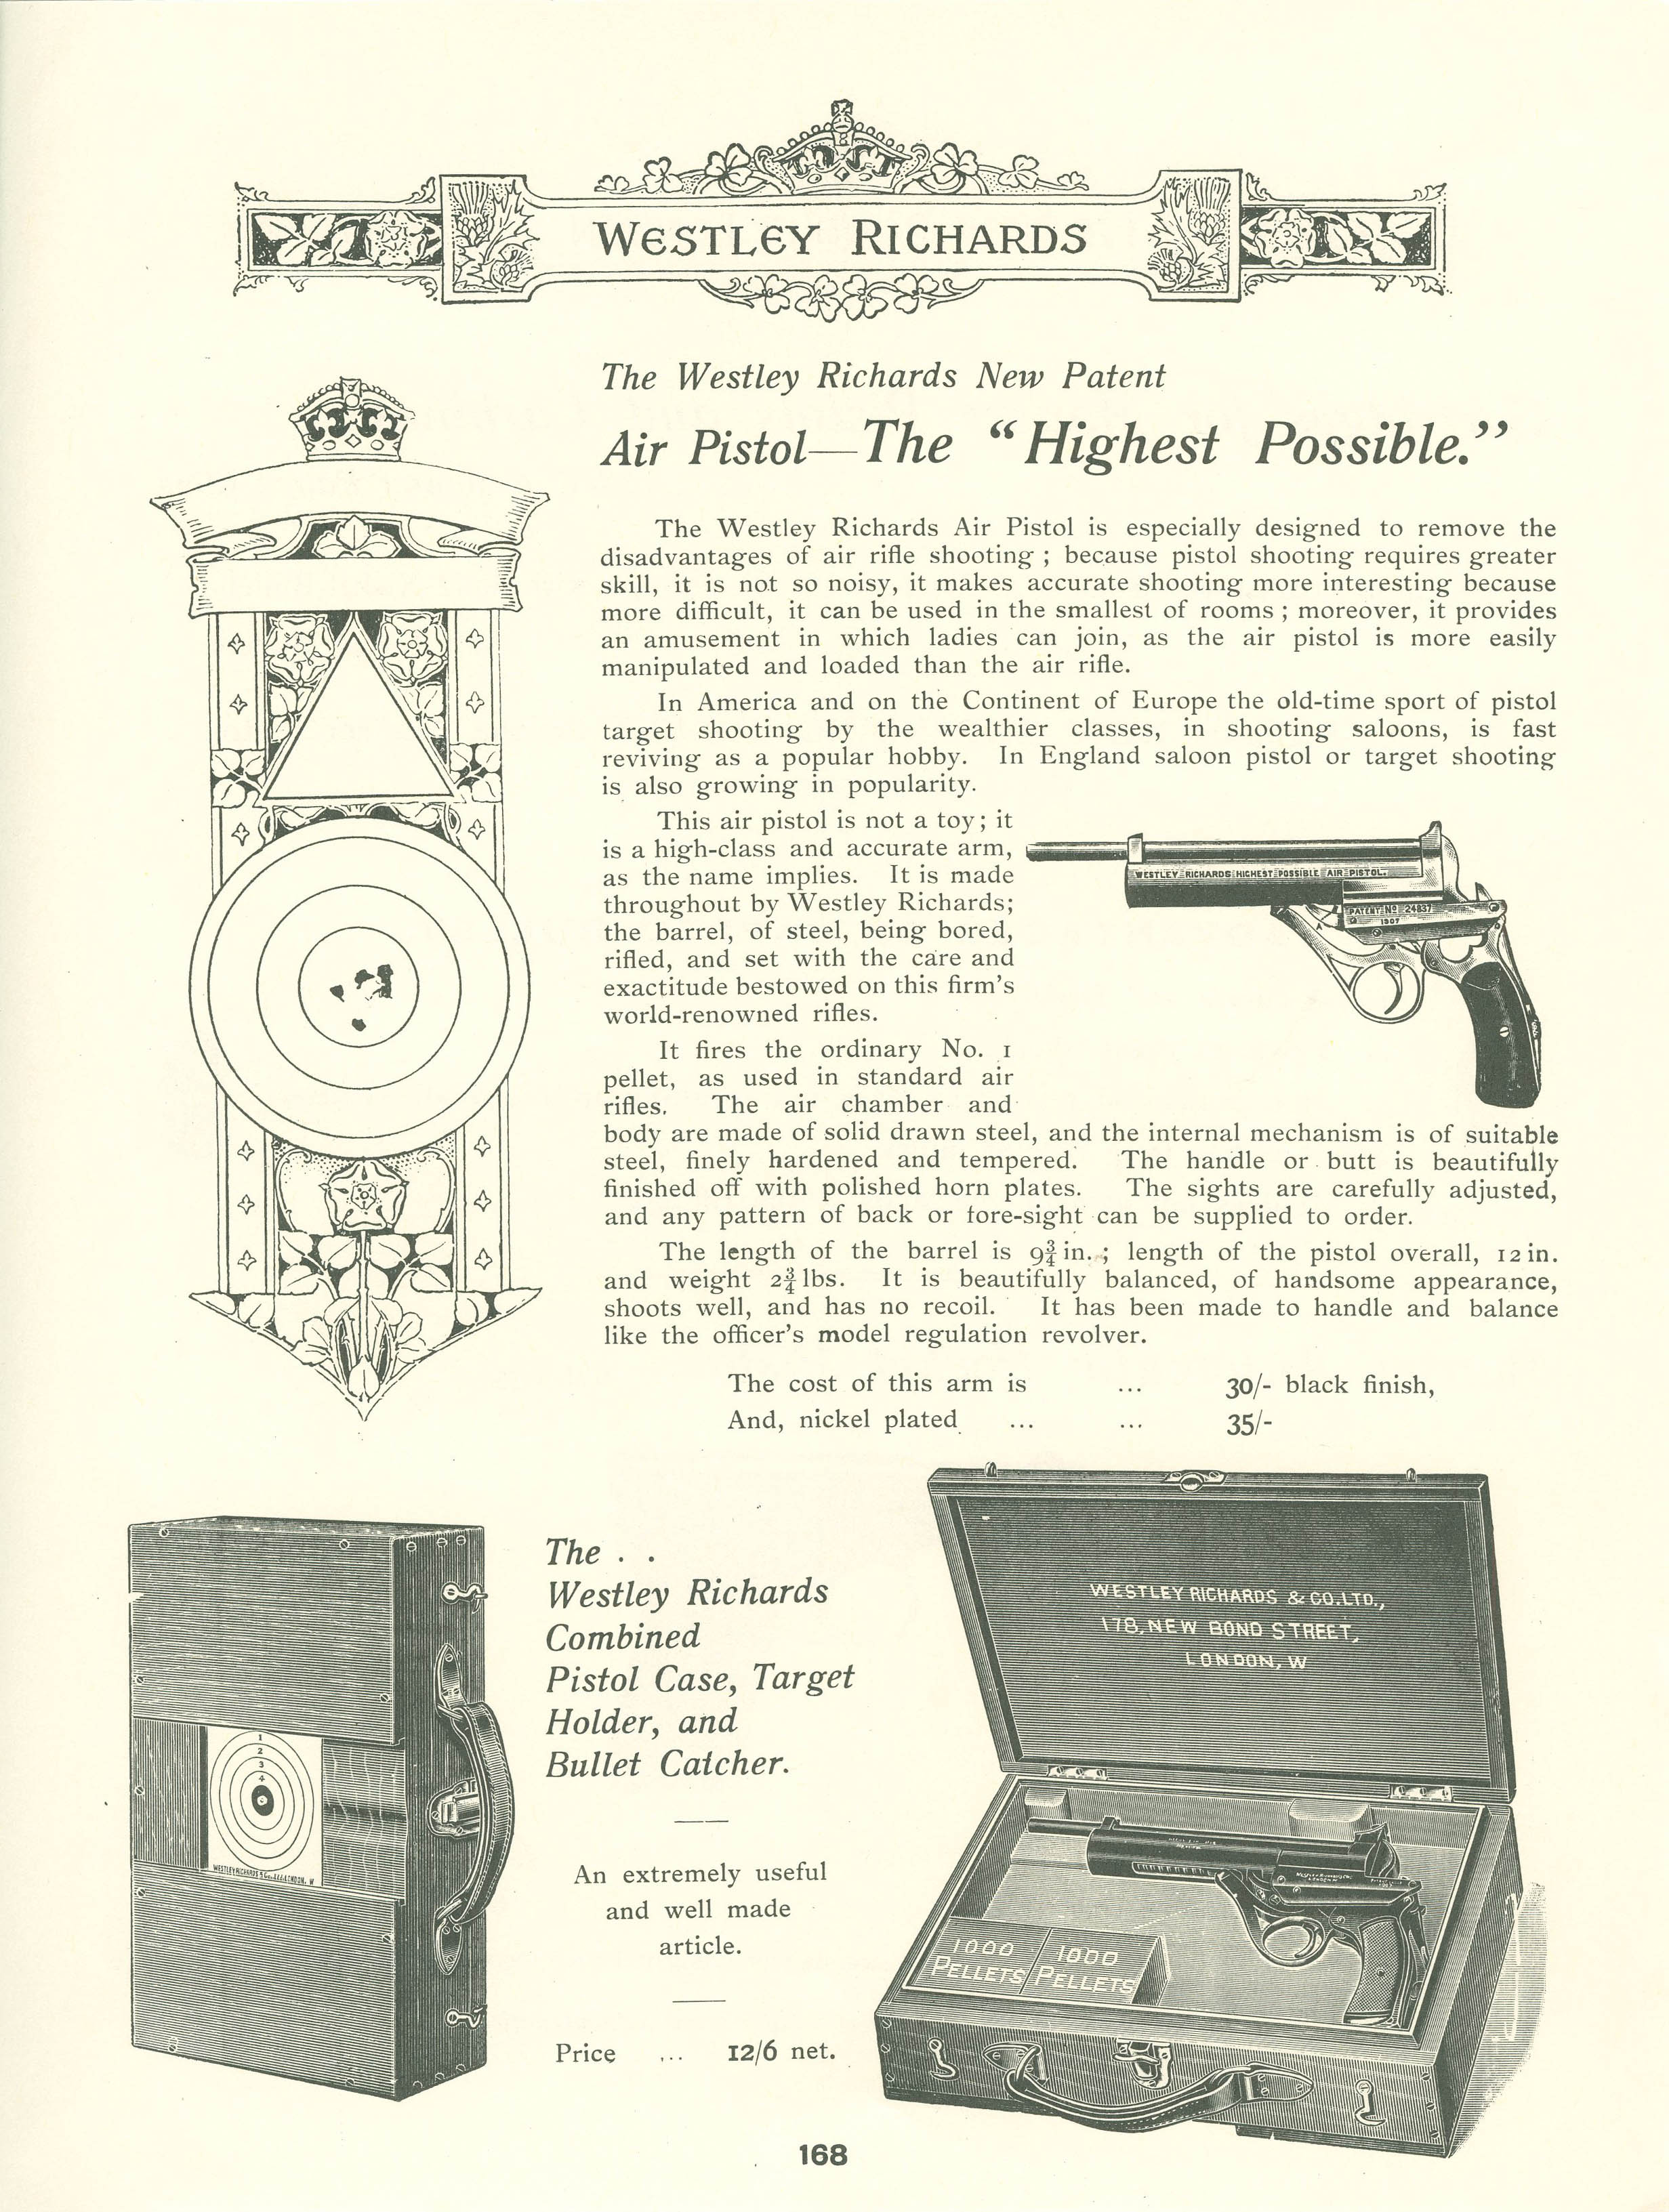 WR Highest Possible Air Pistol